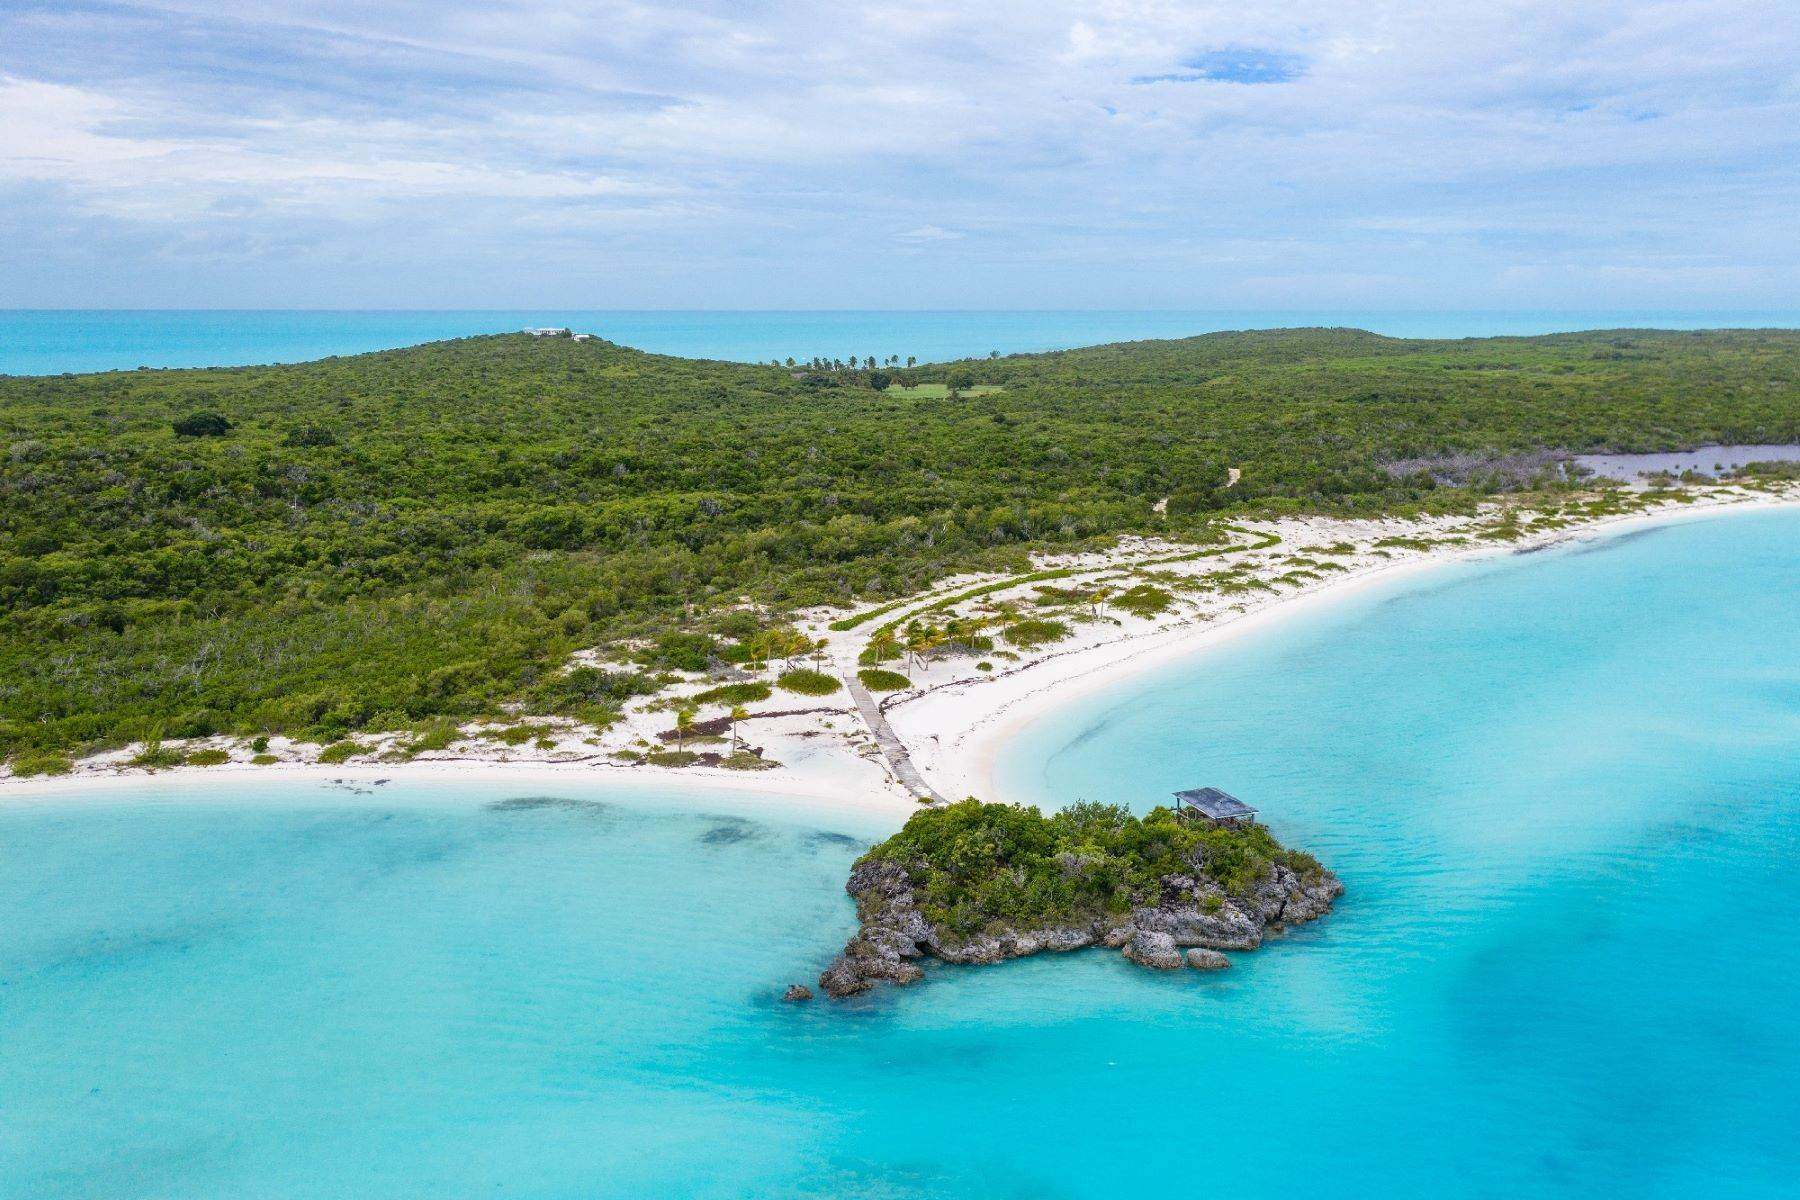 5. Private Islands for Sale at Exuma Cays, Exuma Bahamas